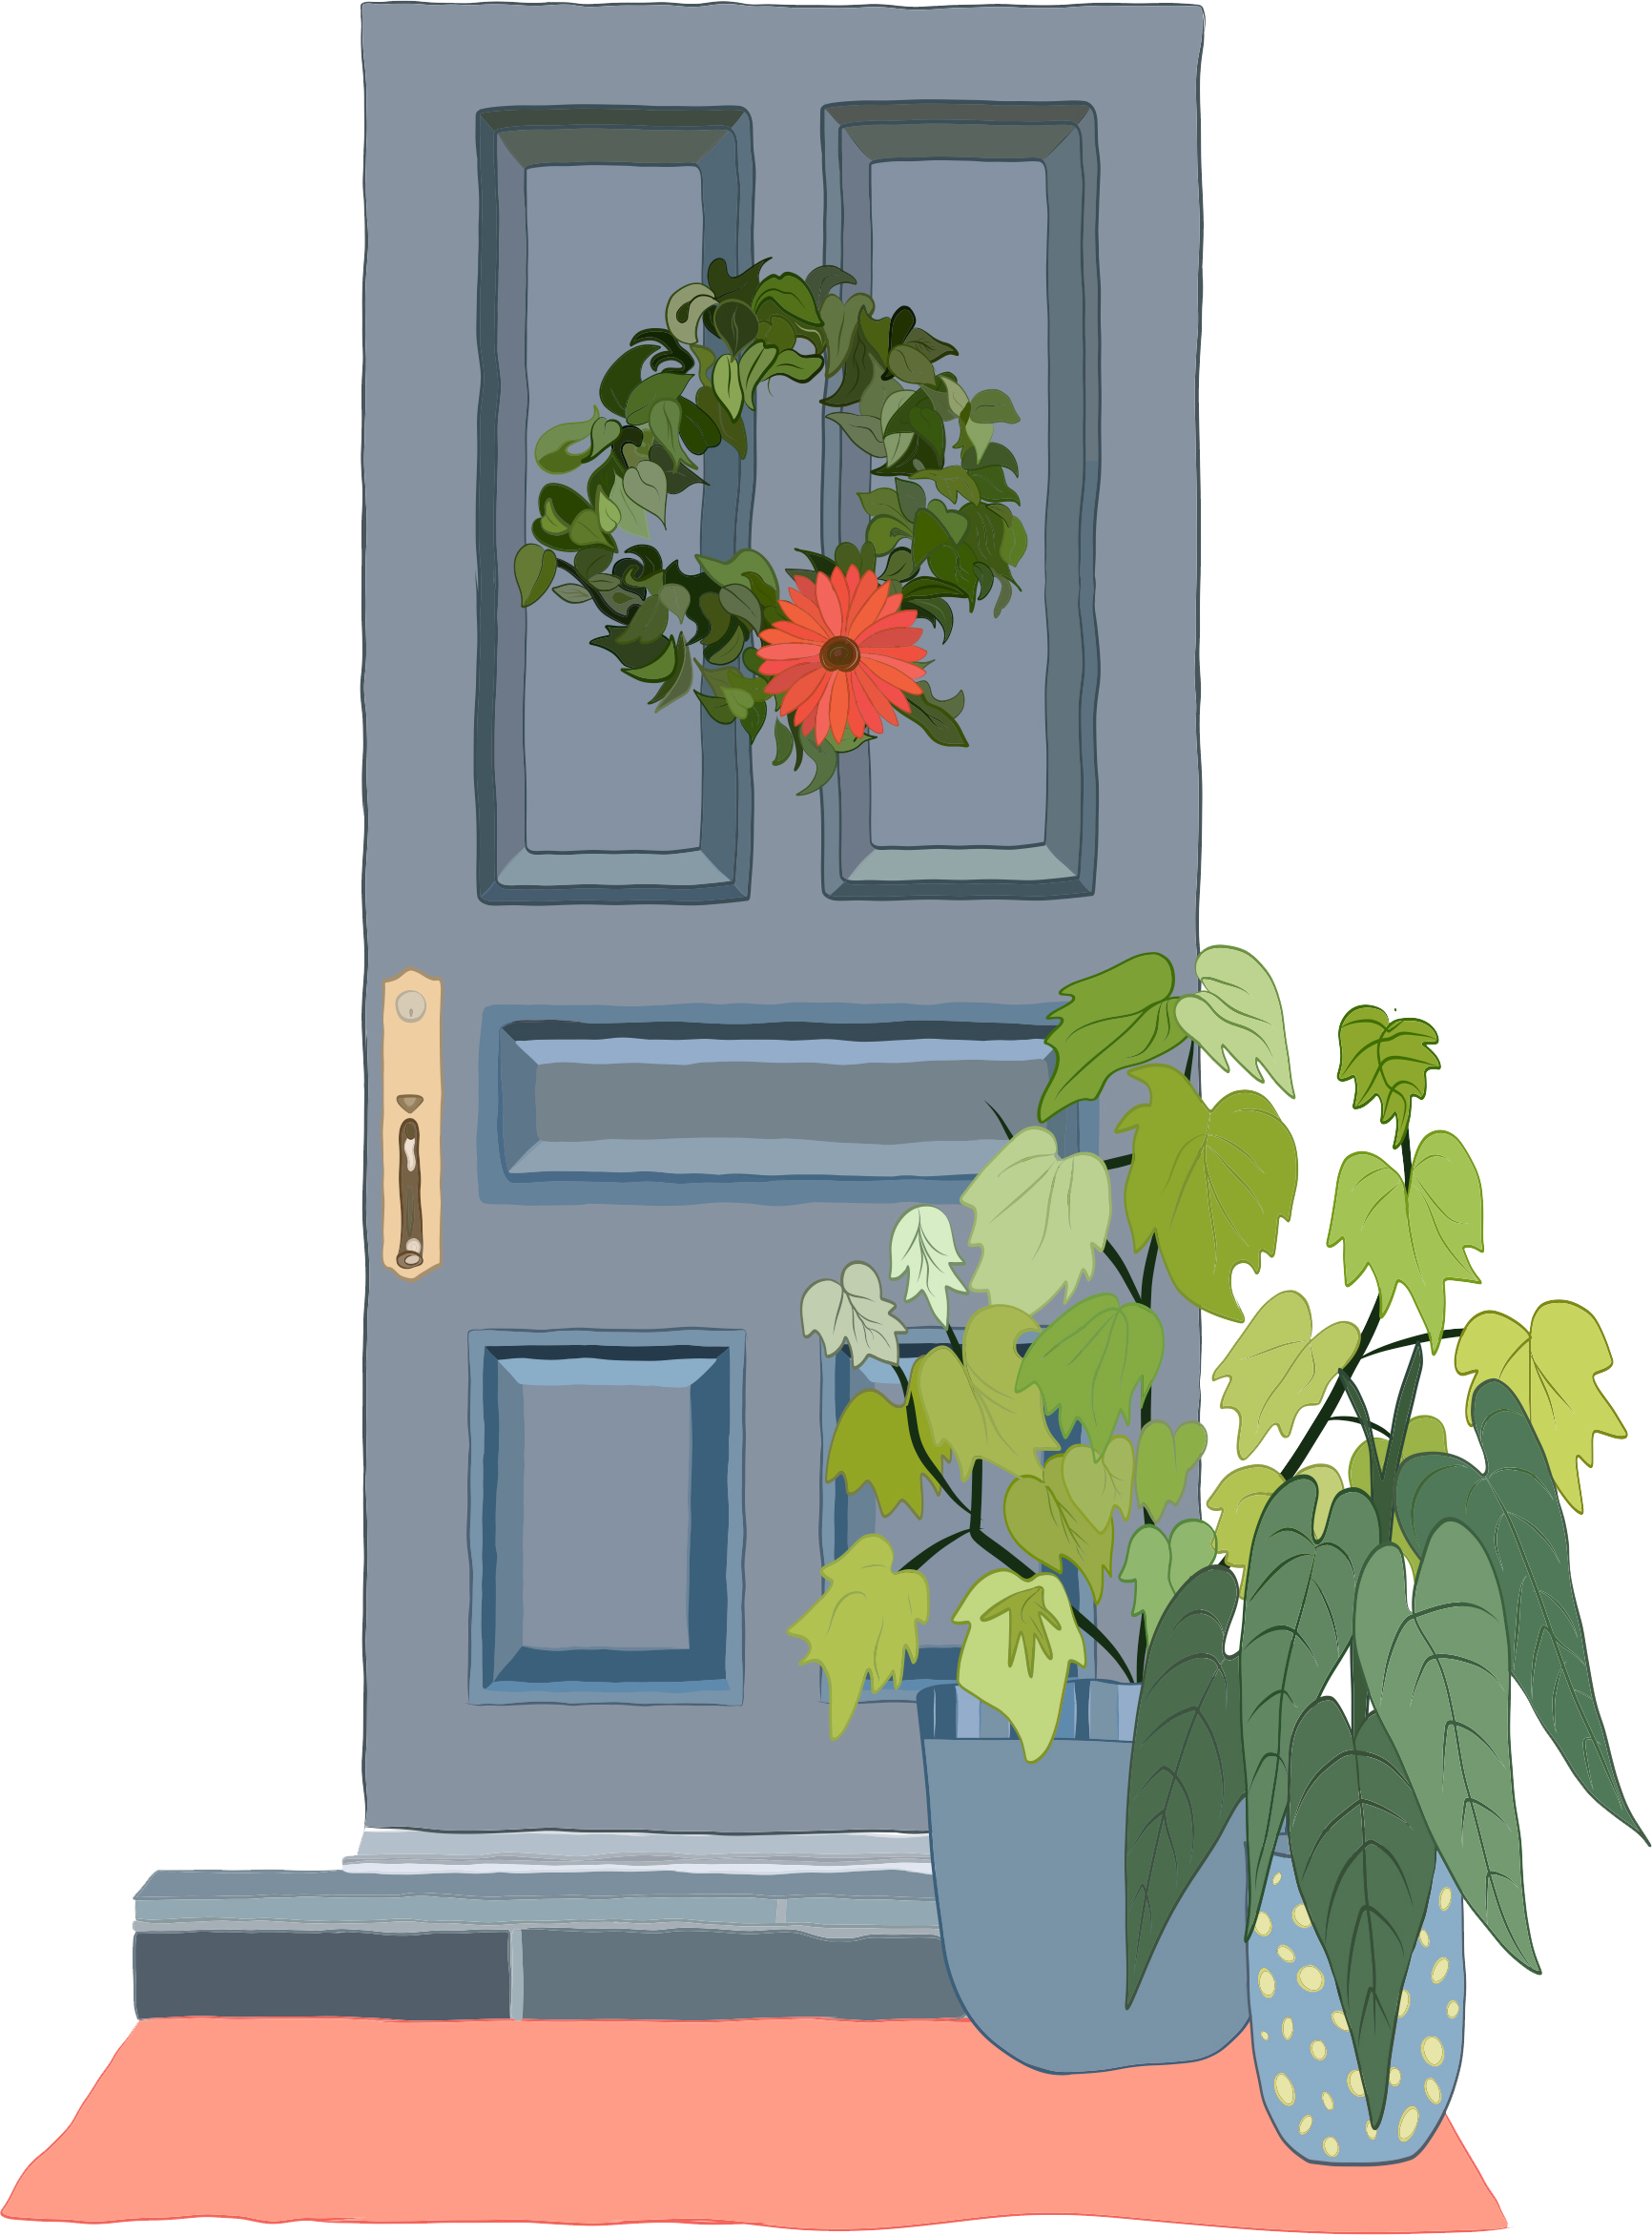 Illustration of blue front door with wreath and plants